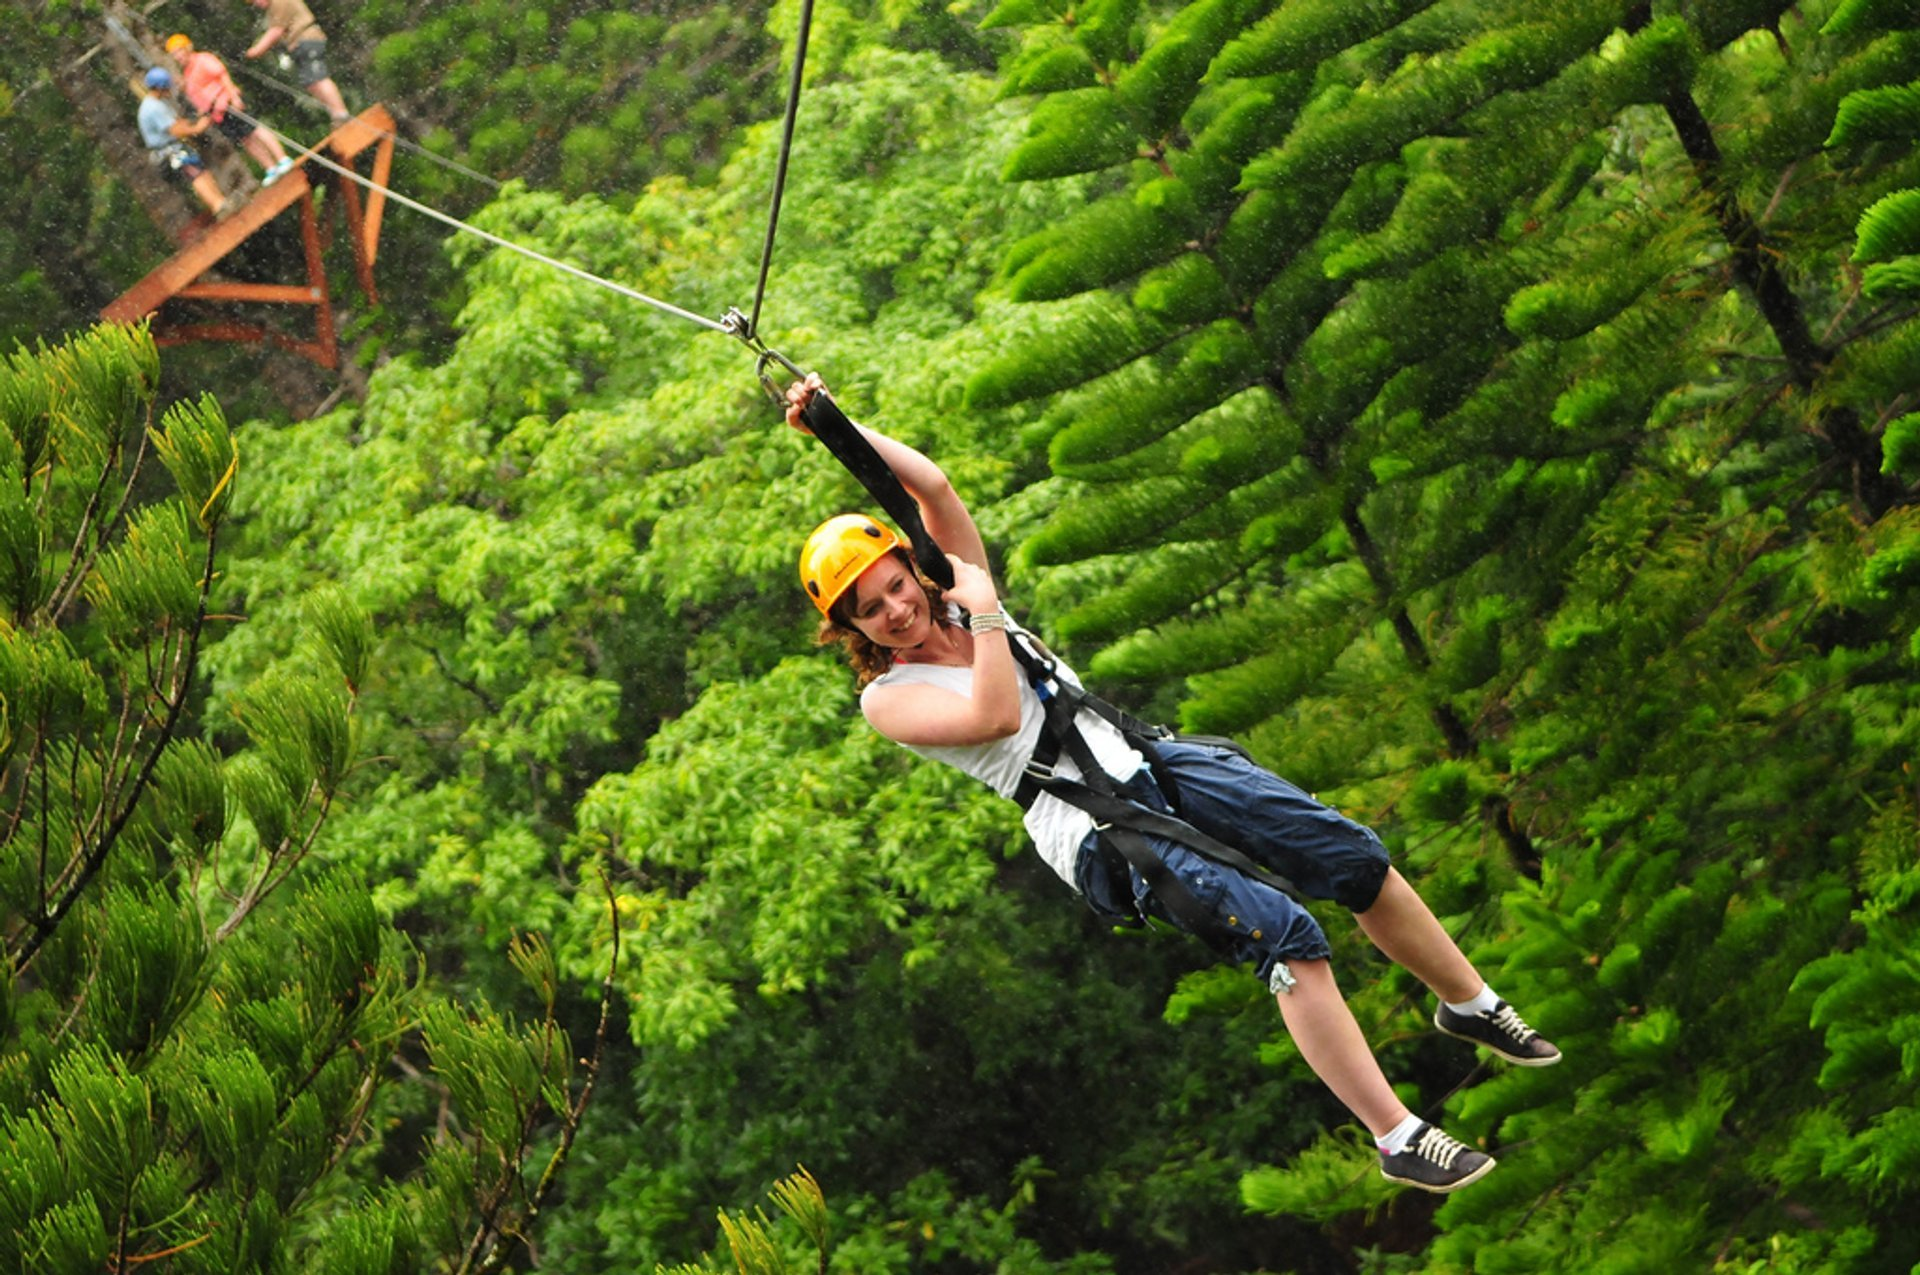 Ziplining in Hawaii - Best Time